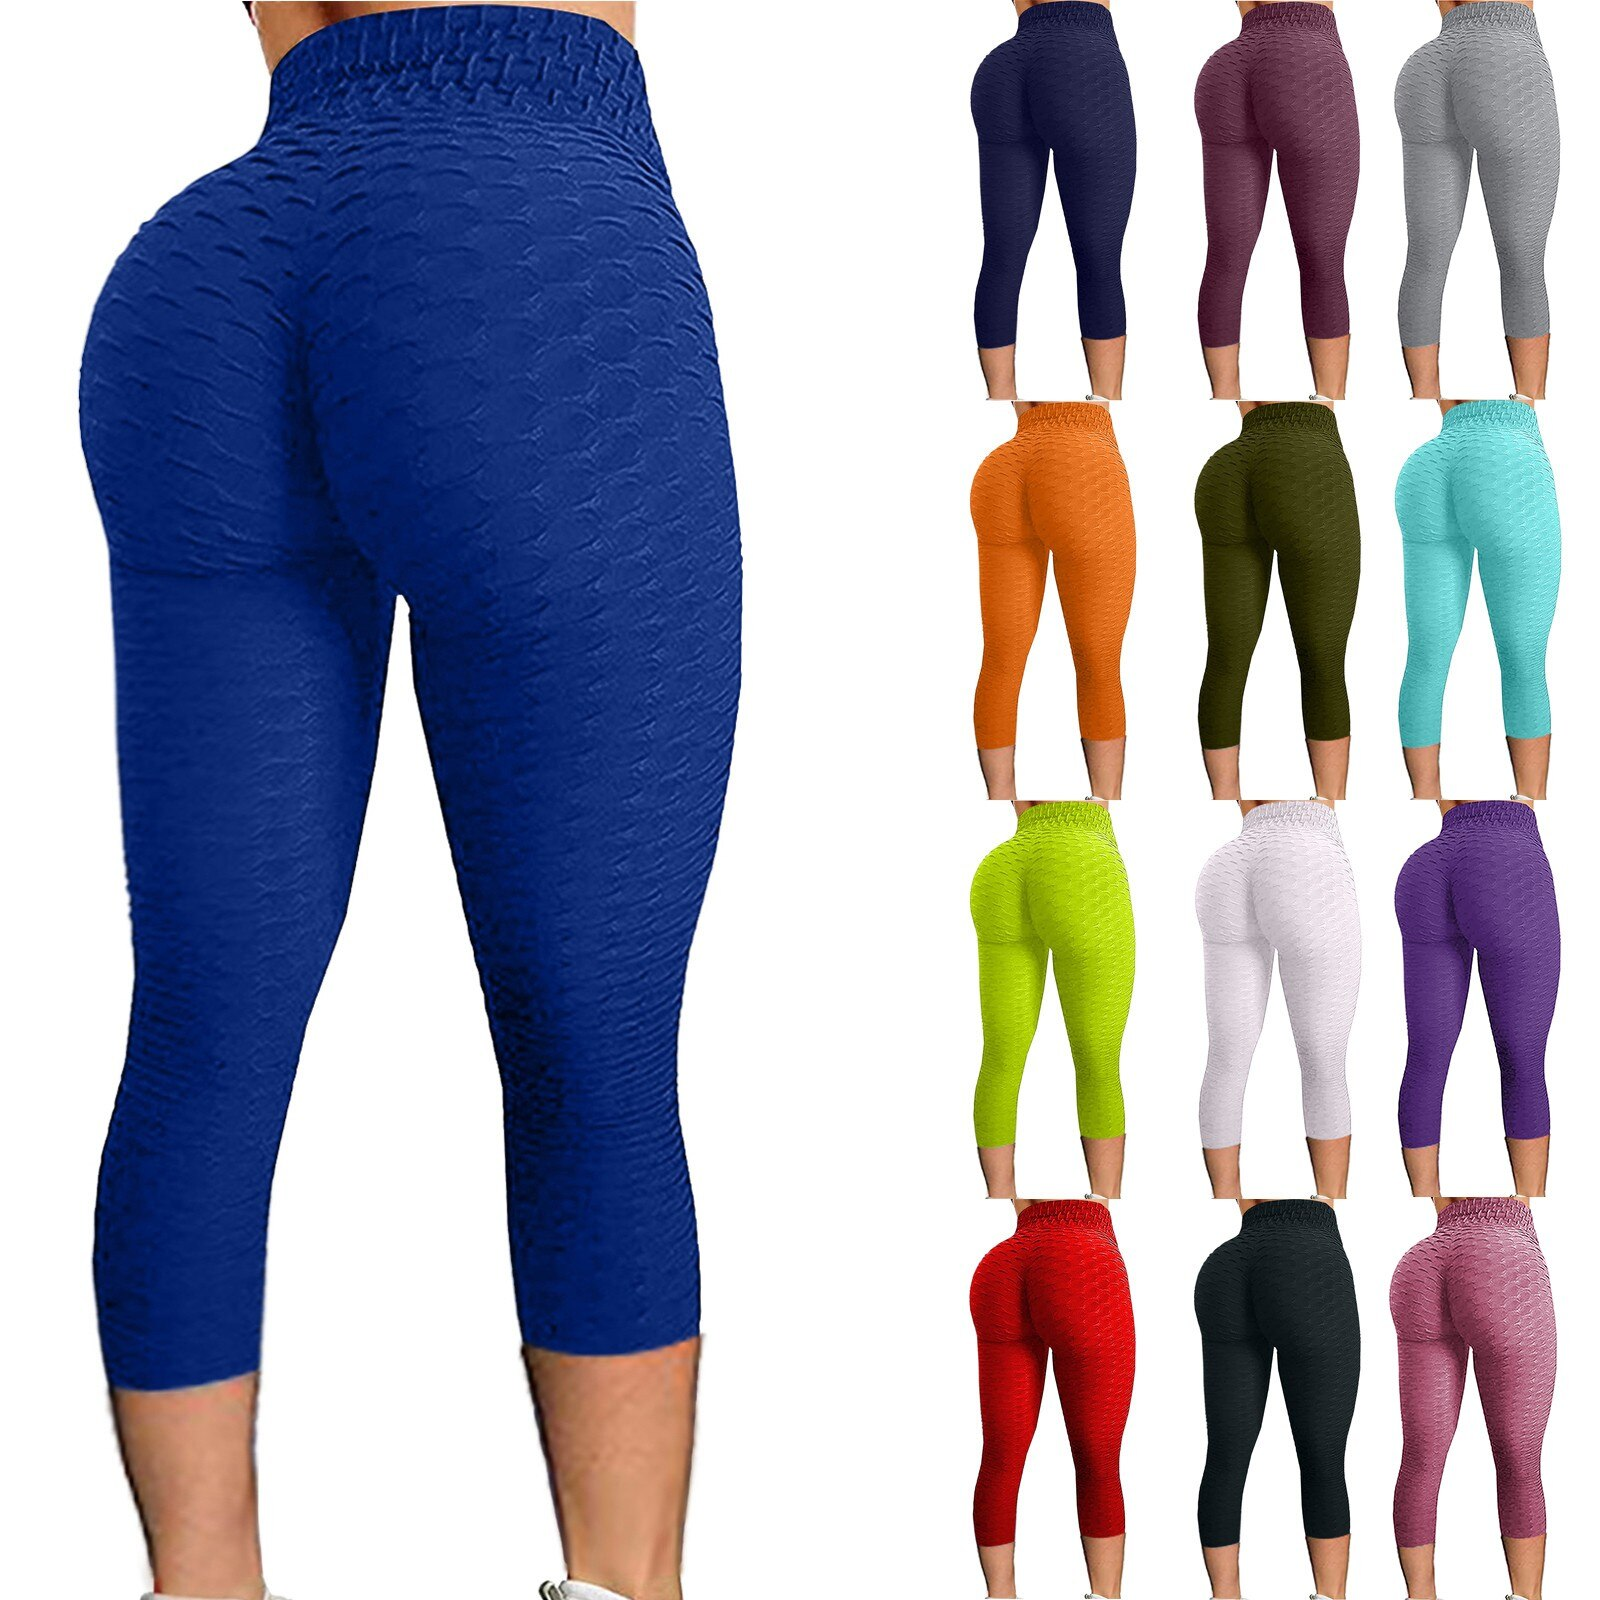 WomenYoga Pants High Waist Bubble Hip Lifting Exercise Fitness Running Sports Long Pants Jogging Keep Fit Trousers Plus Size